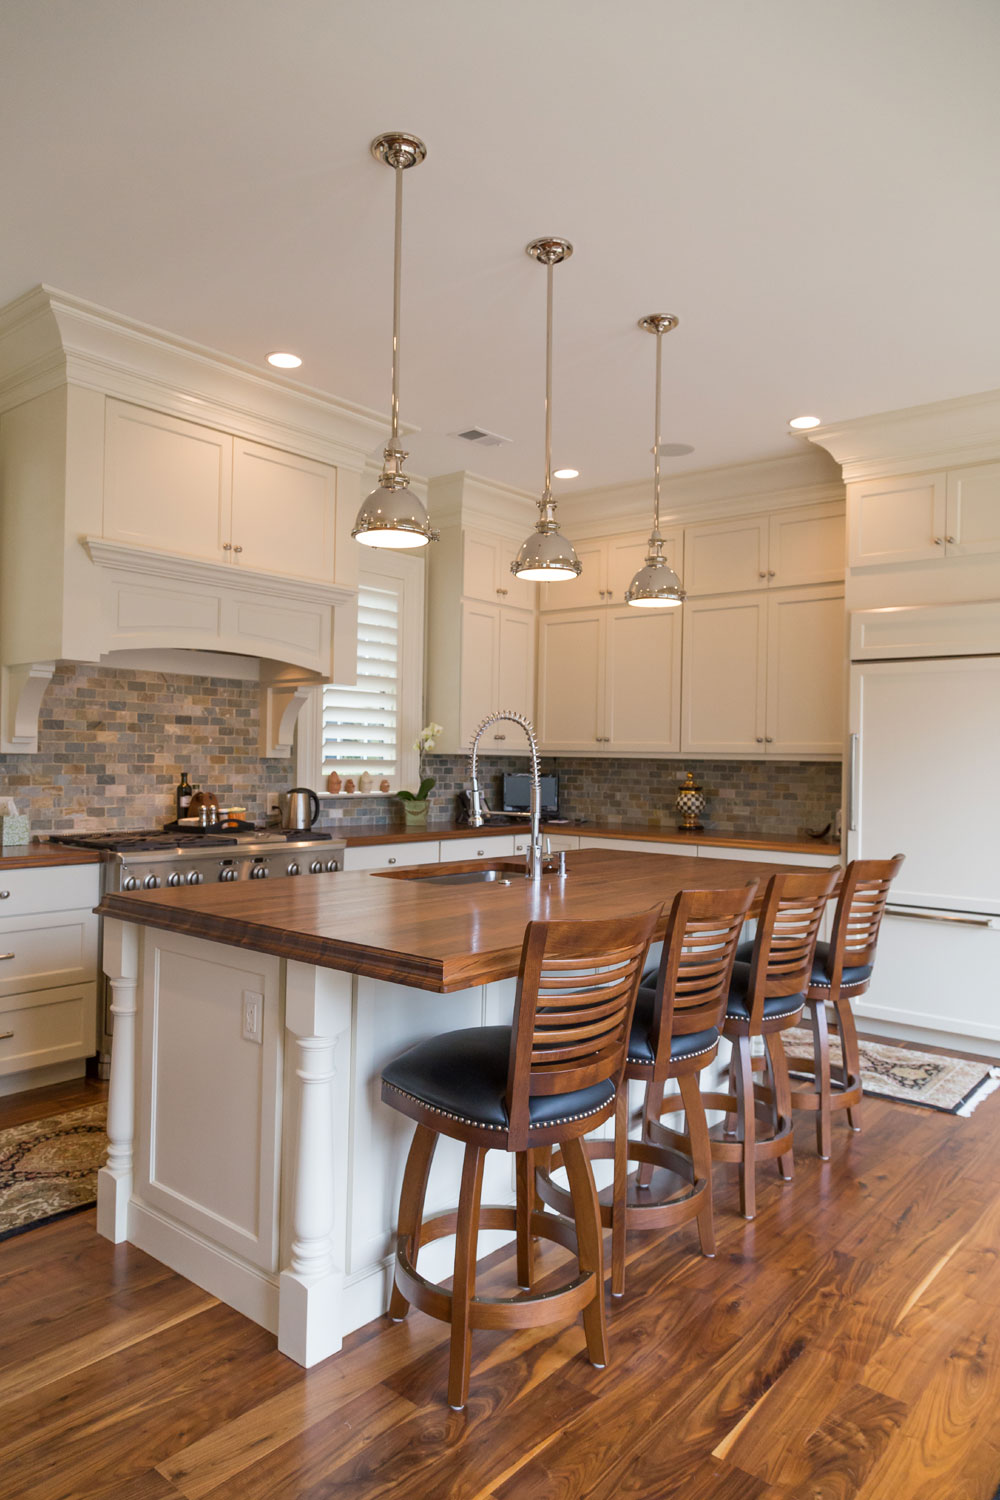 Wood Island Tops Kitchens Walnut Countertops - J. Aaron